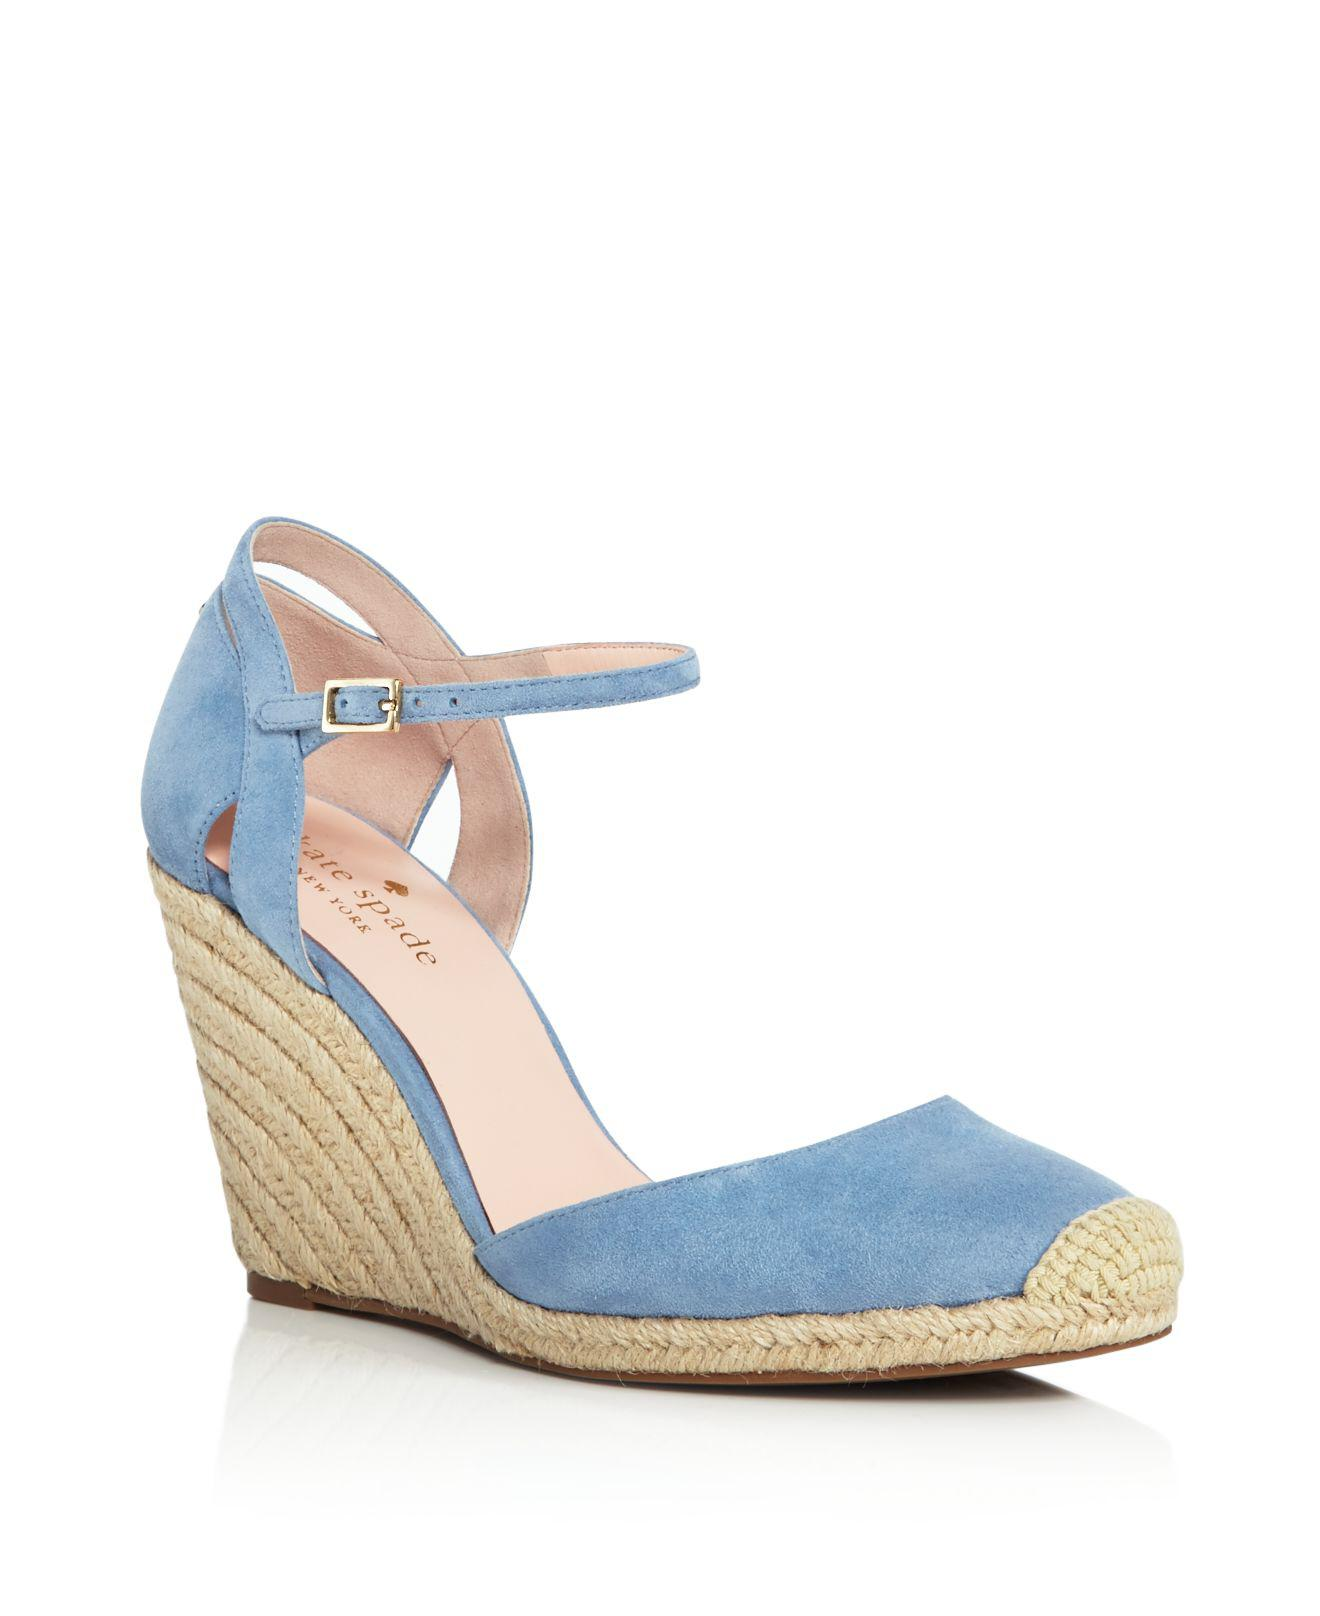 ee2cba0cf50 Kate Spade Women's Giovanna Suede Espadrille Wedge Pumps in Blue - Lyst